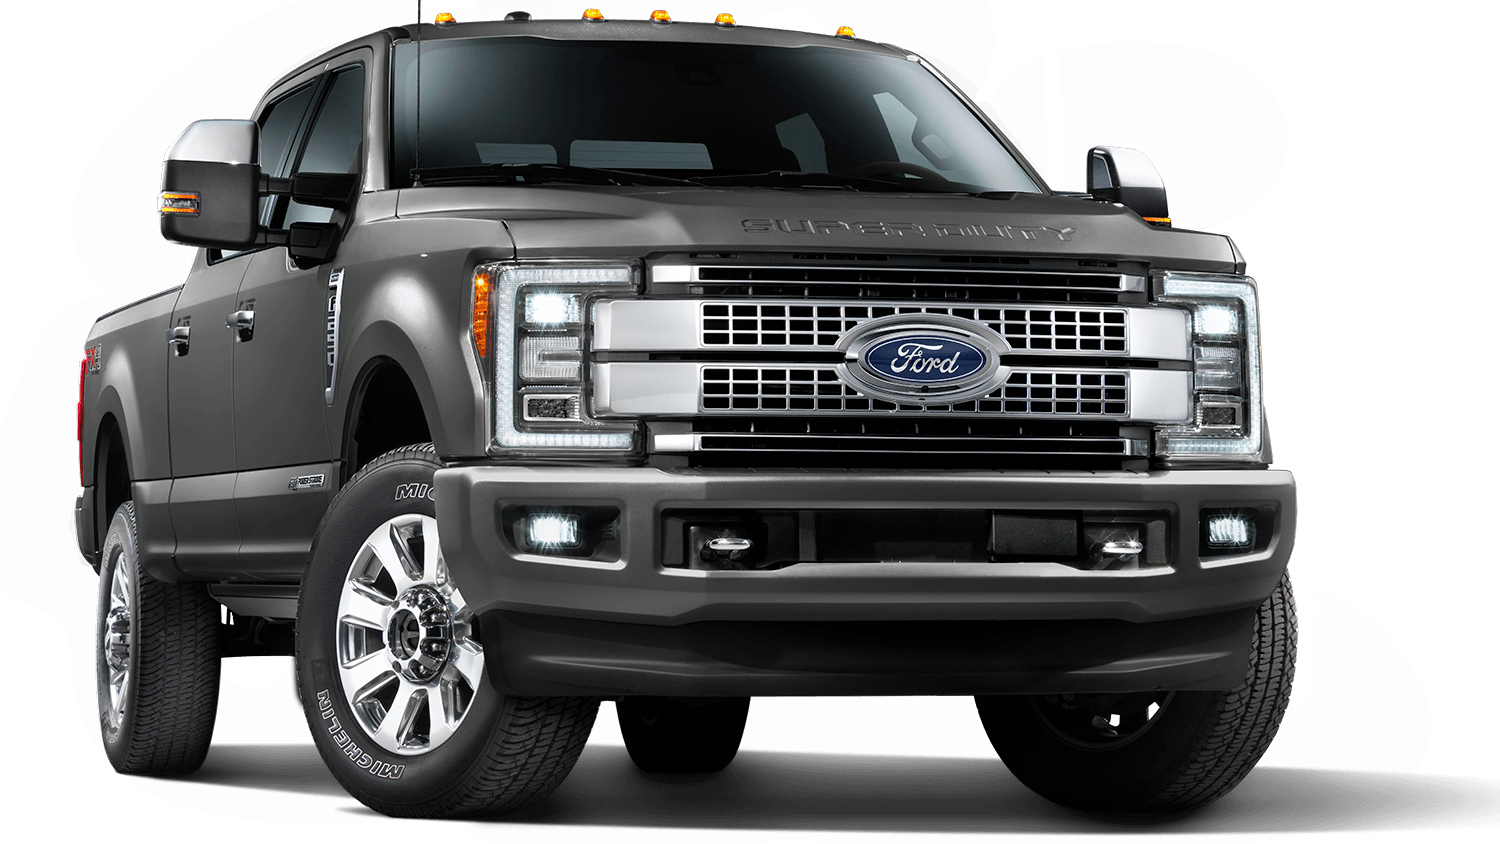 Capital Ford of Raleigh NC | North Carolina Ford Dealership on